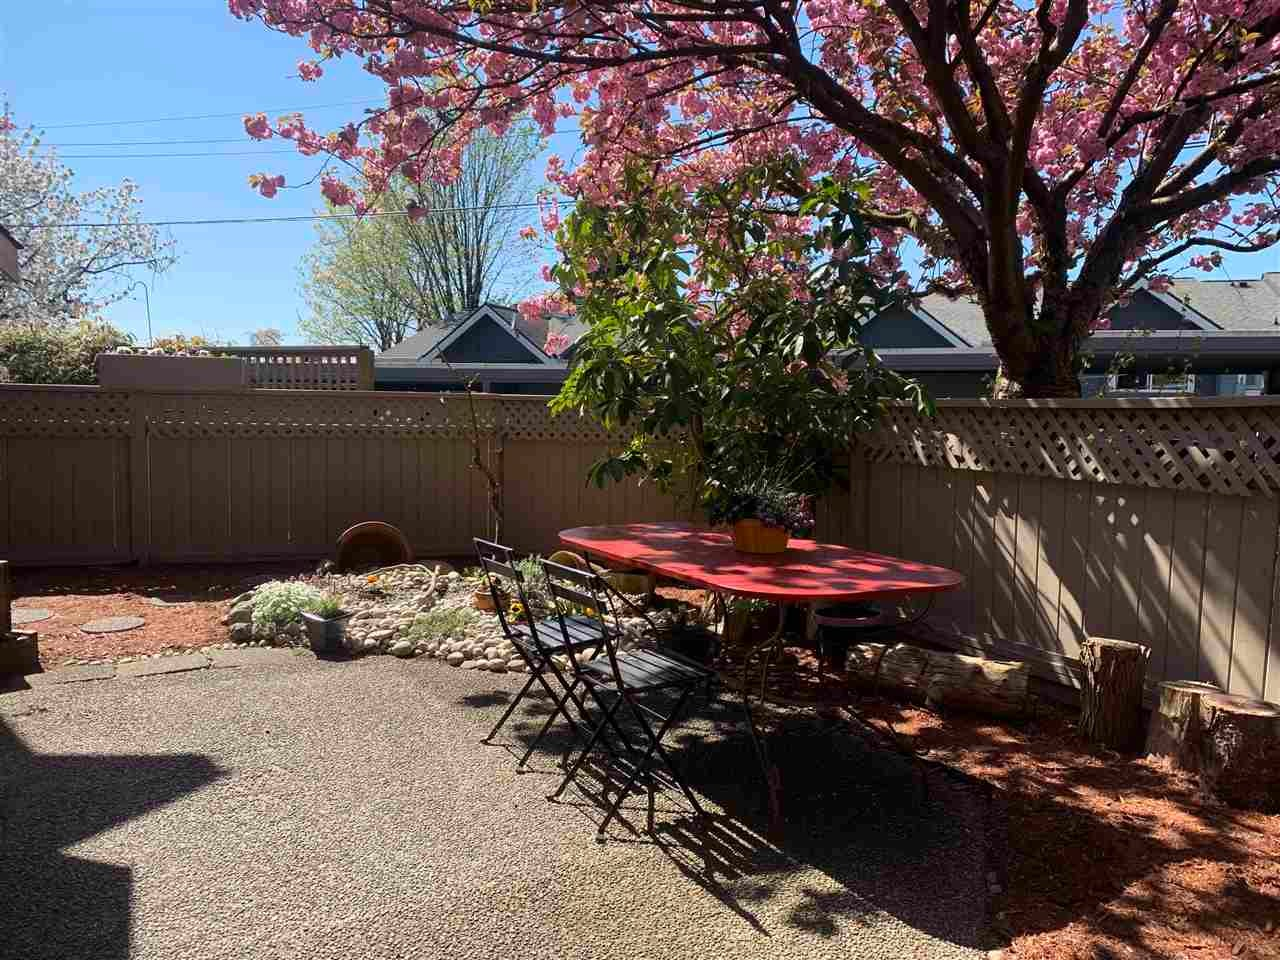 2 230 W 15TH STREET - Central Lonsdale Townhouse for sale, 3 Bedrooms (R2572749) - #1